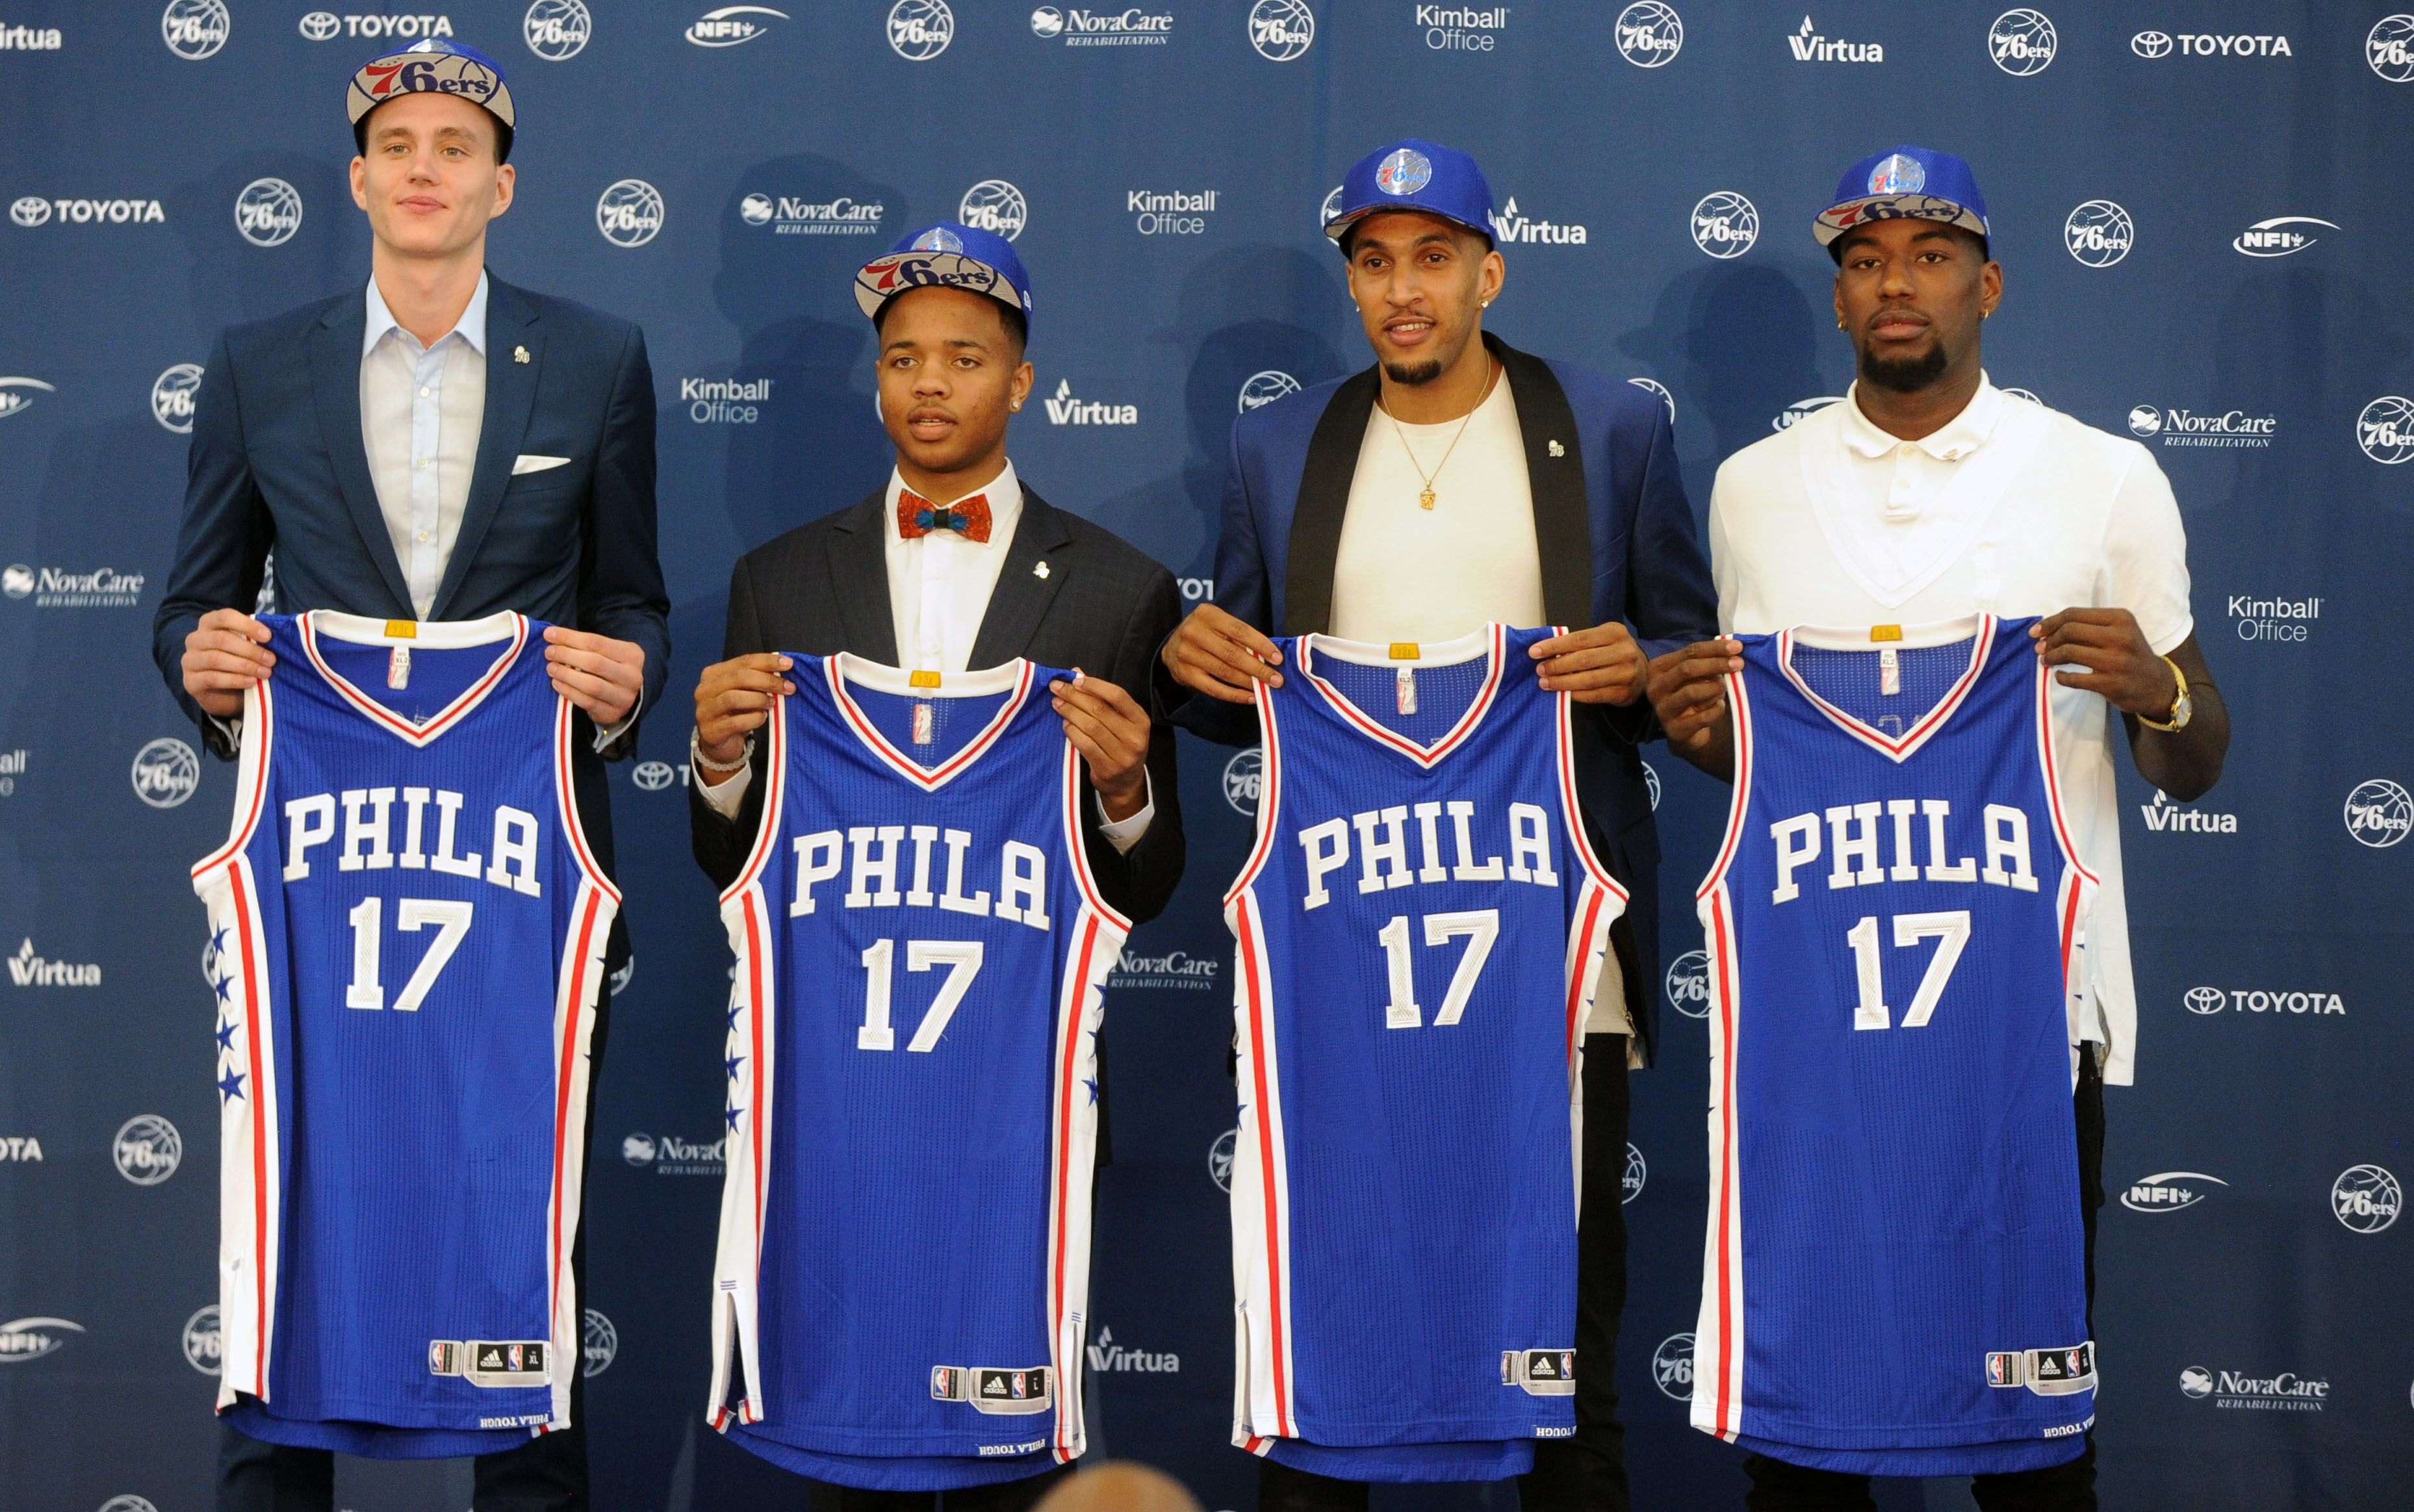 Sixers Draft Strategy Shows Commitment To The Process